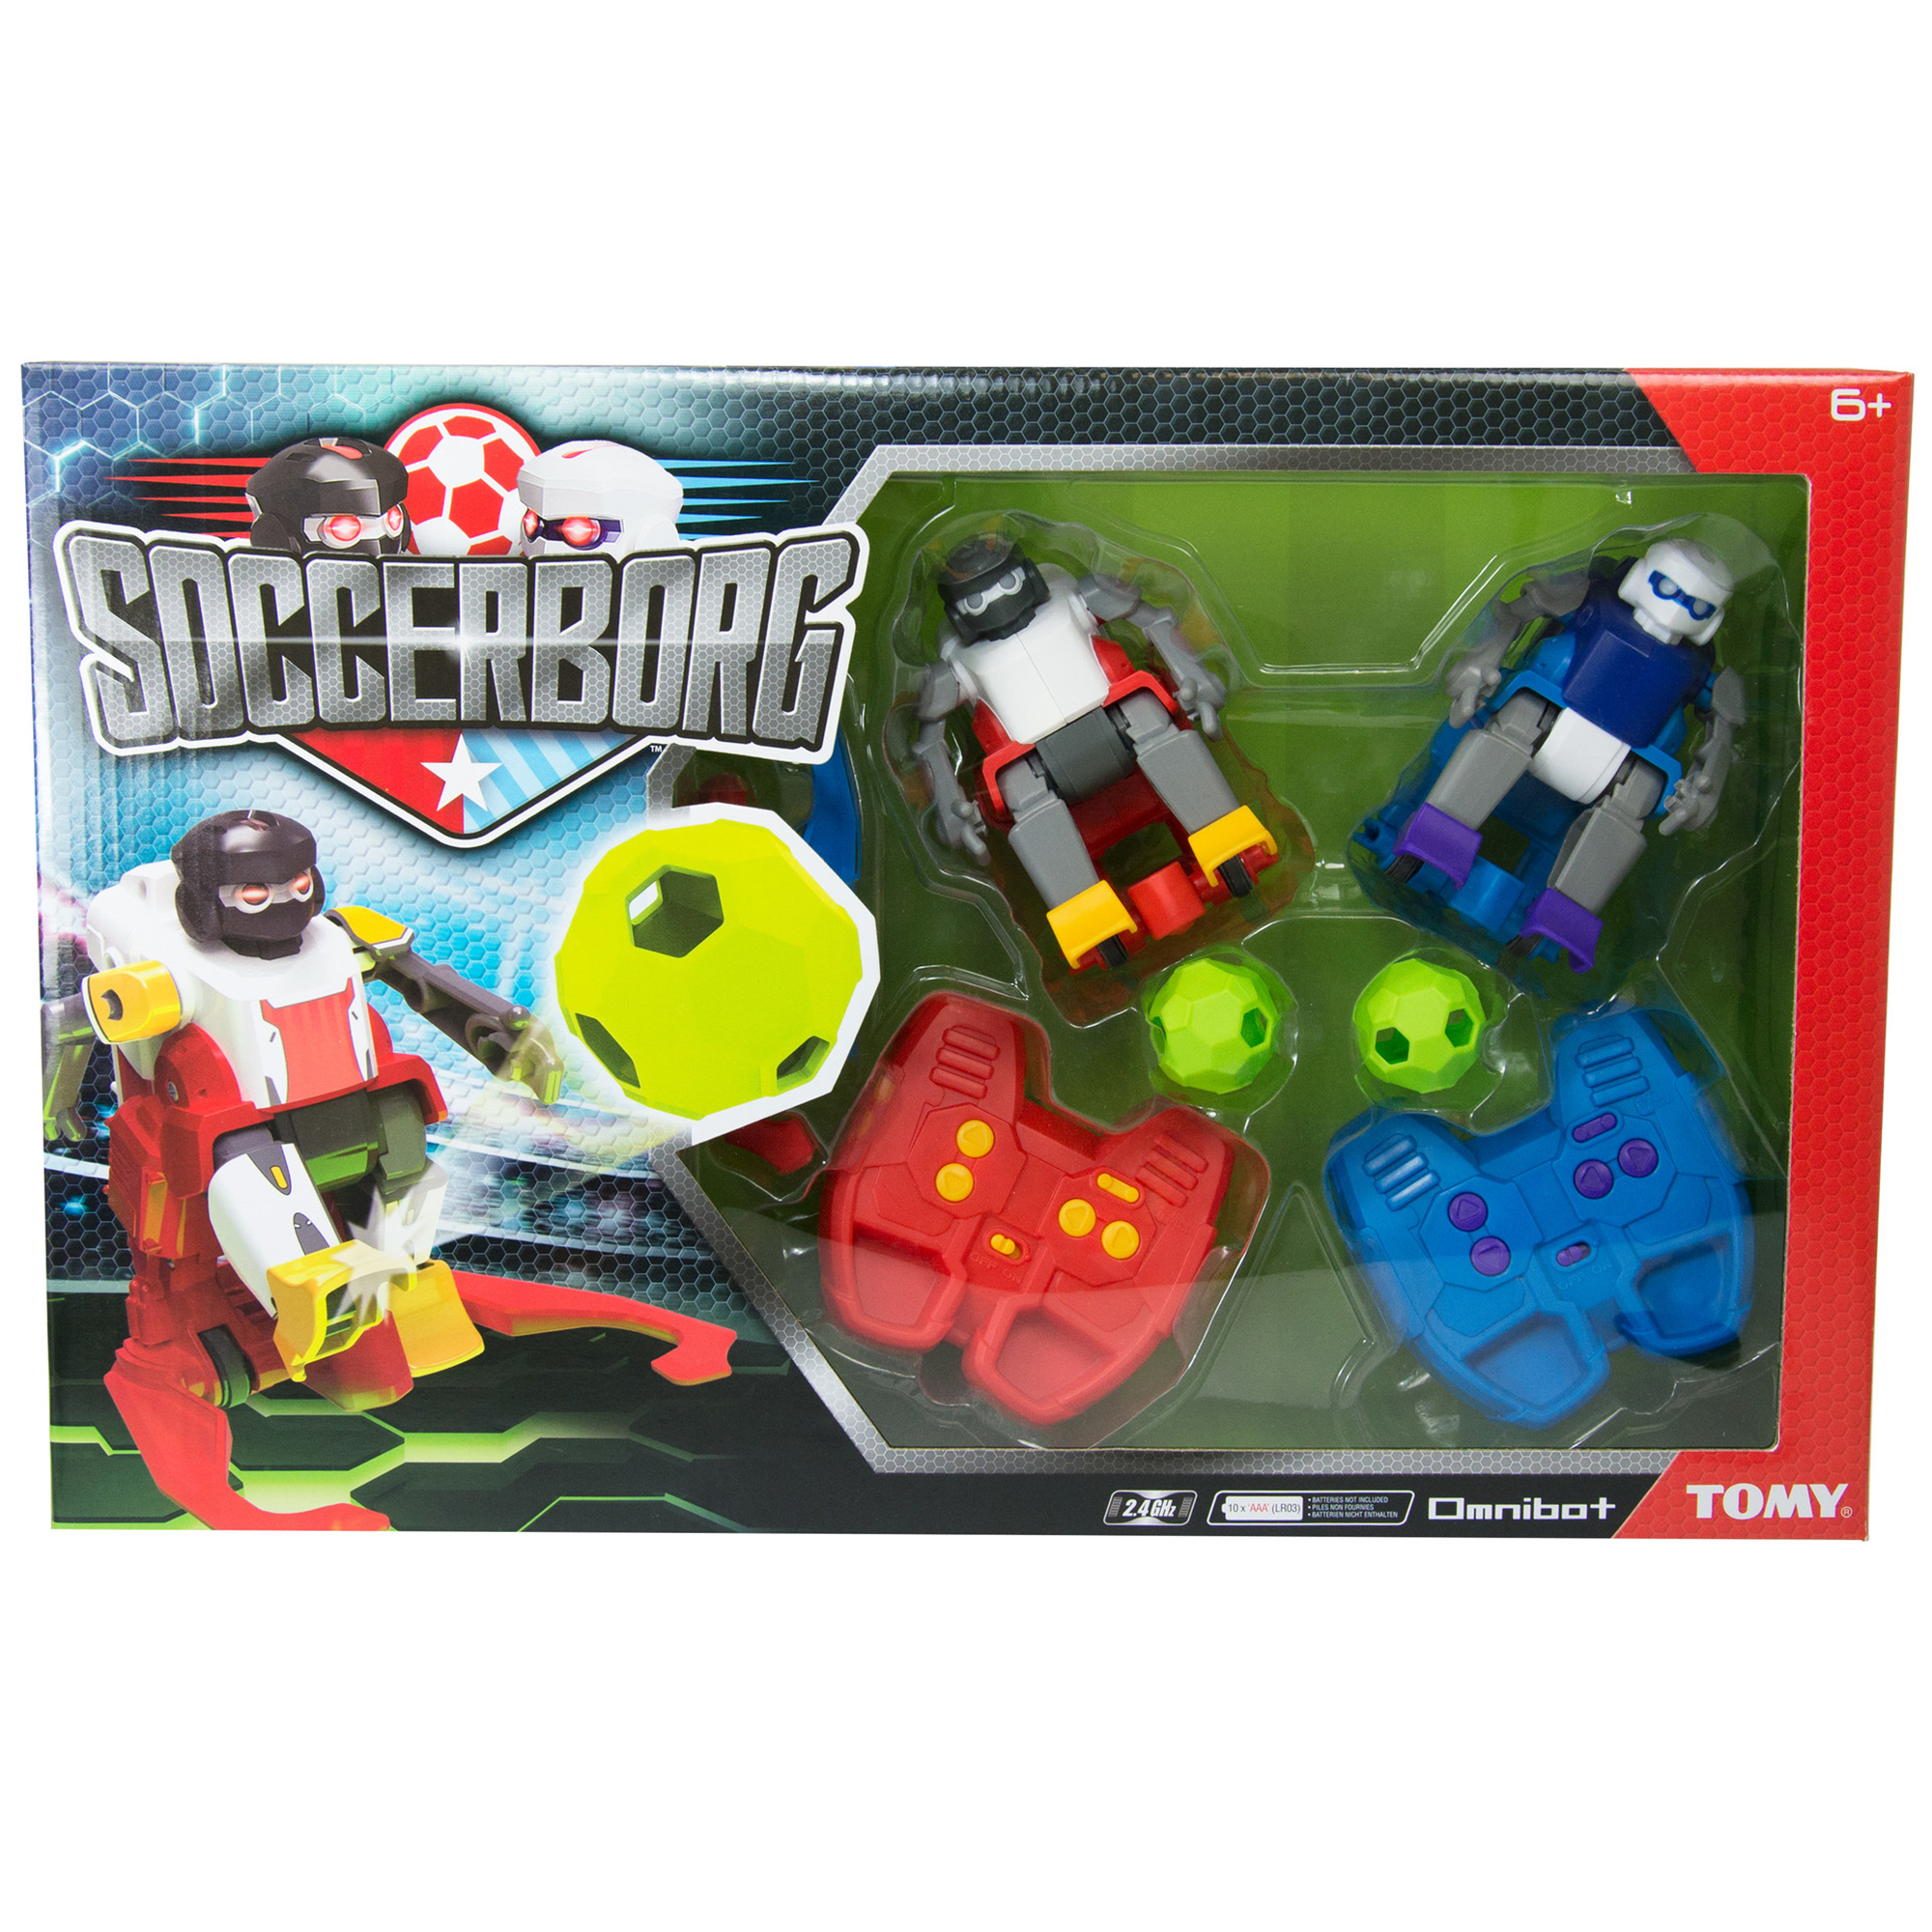 Tomy Soccerborg RC Football Game